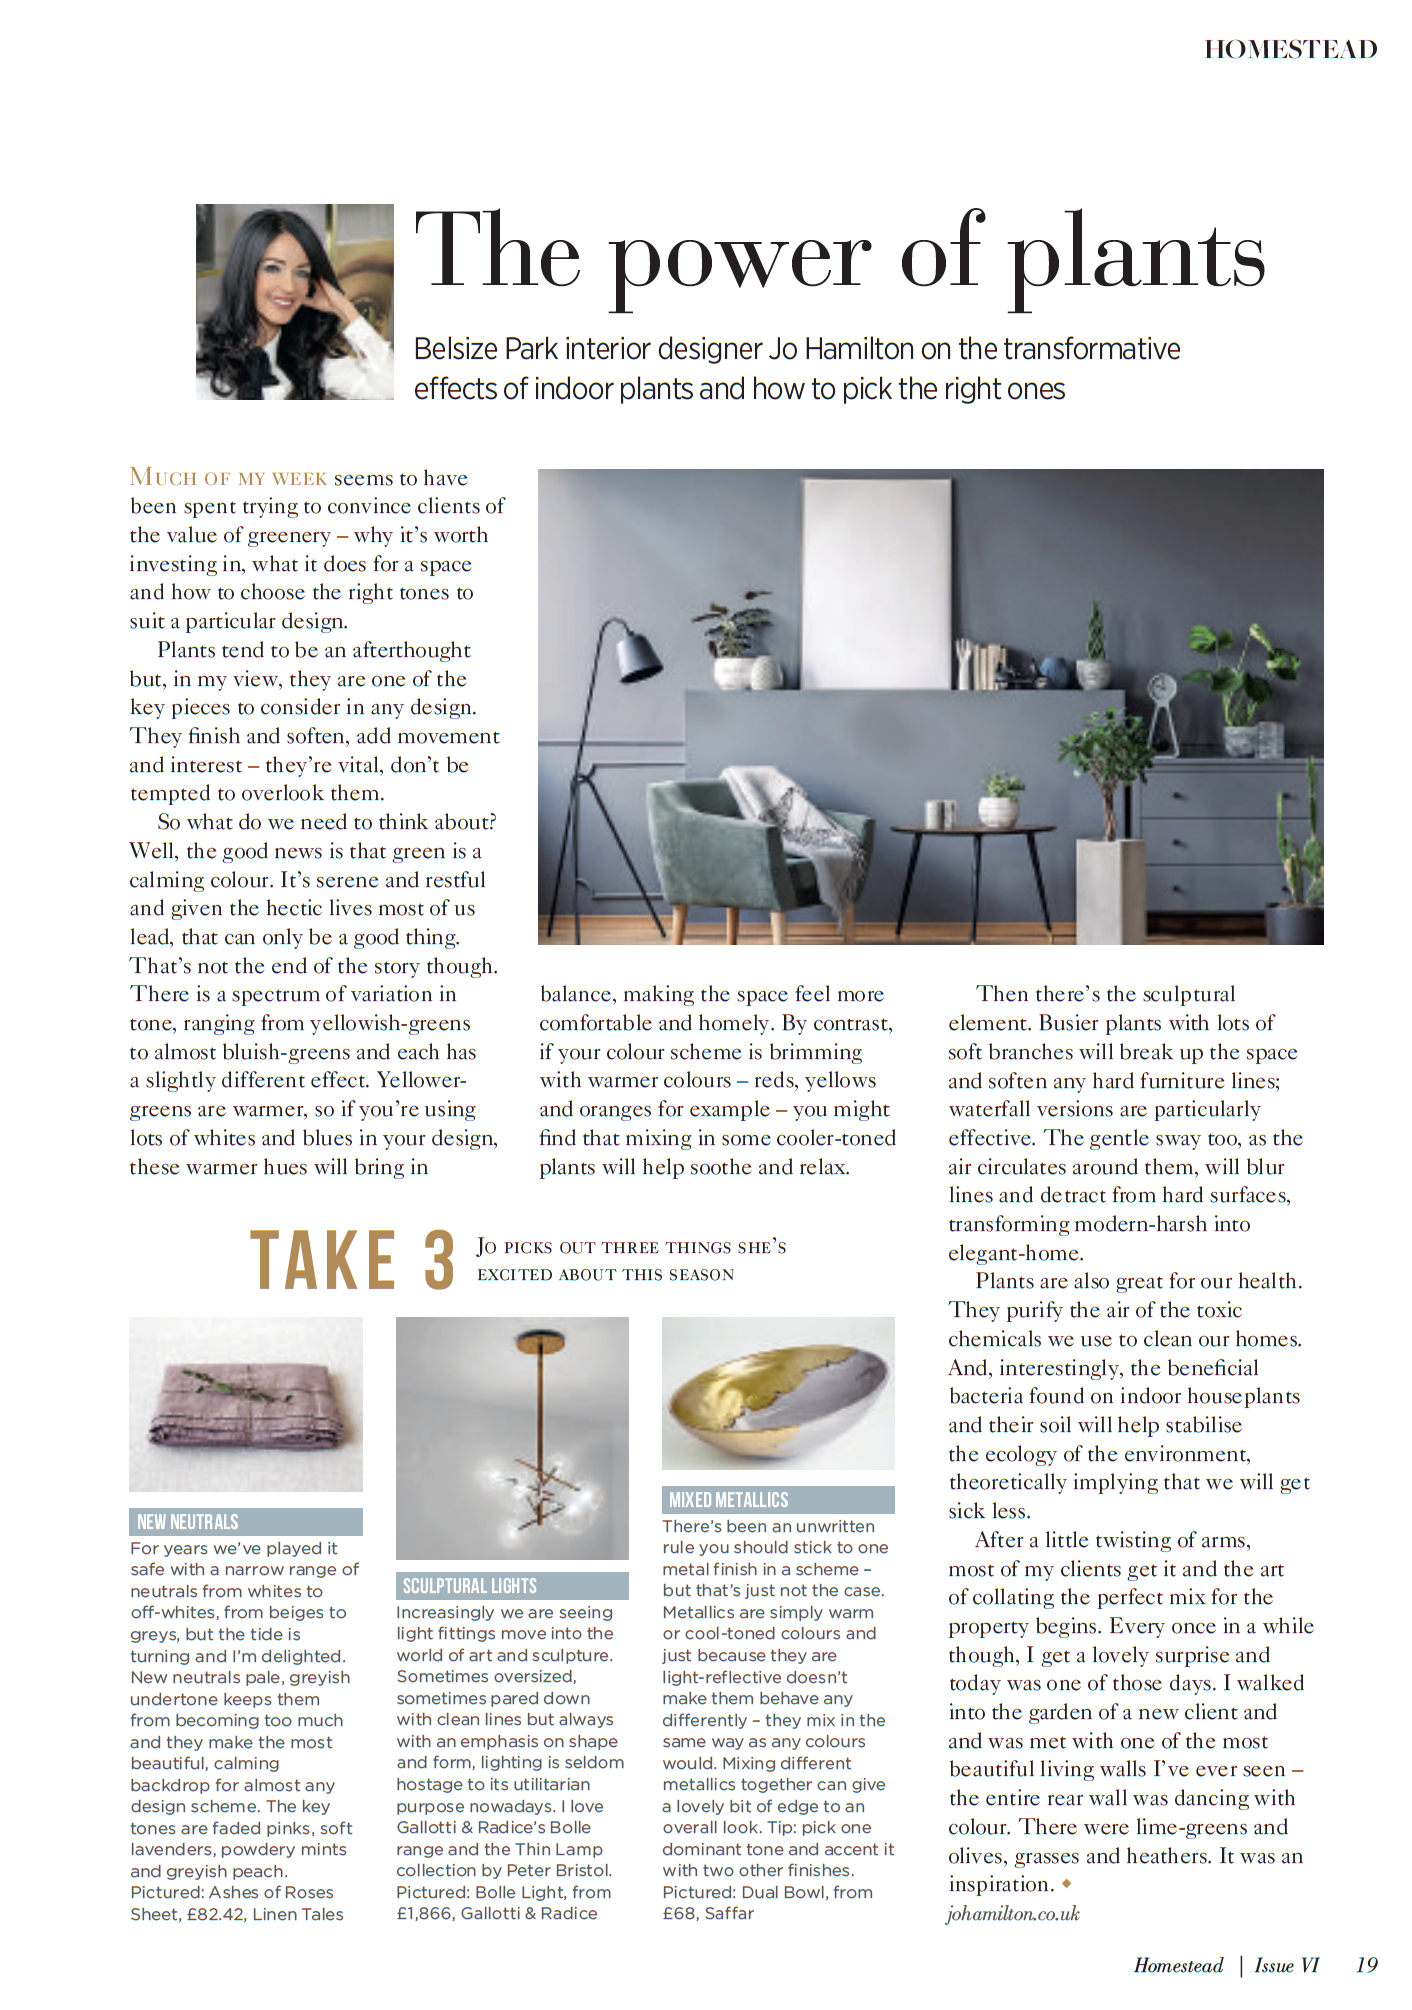 Interior designer Jo Hamilton Homestead column June 2018 P19.png